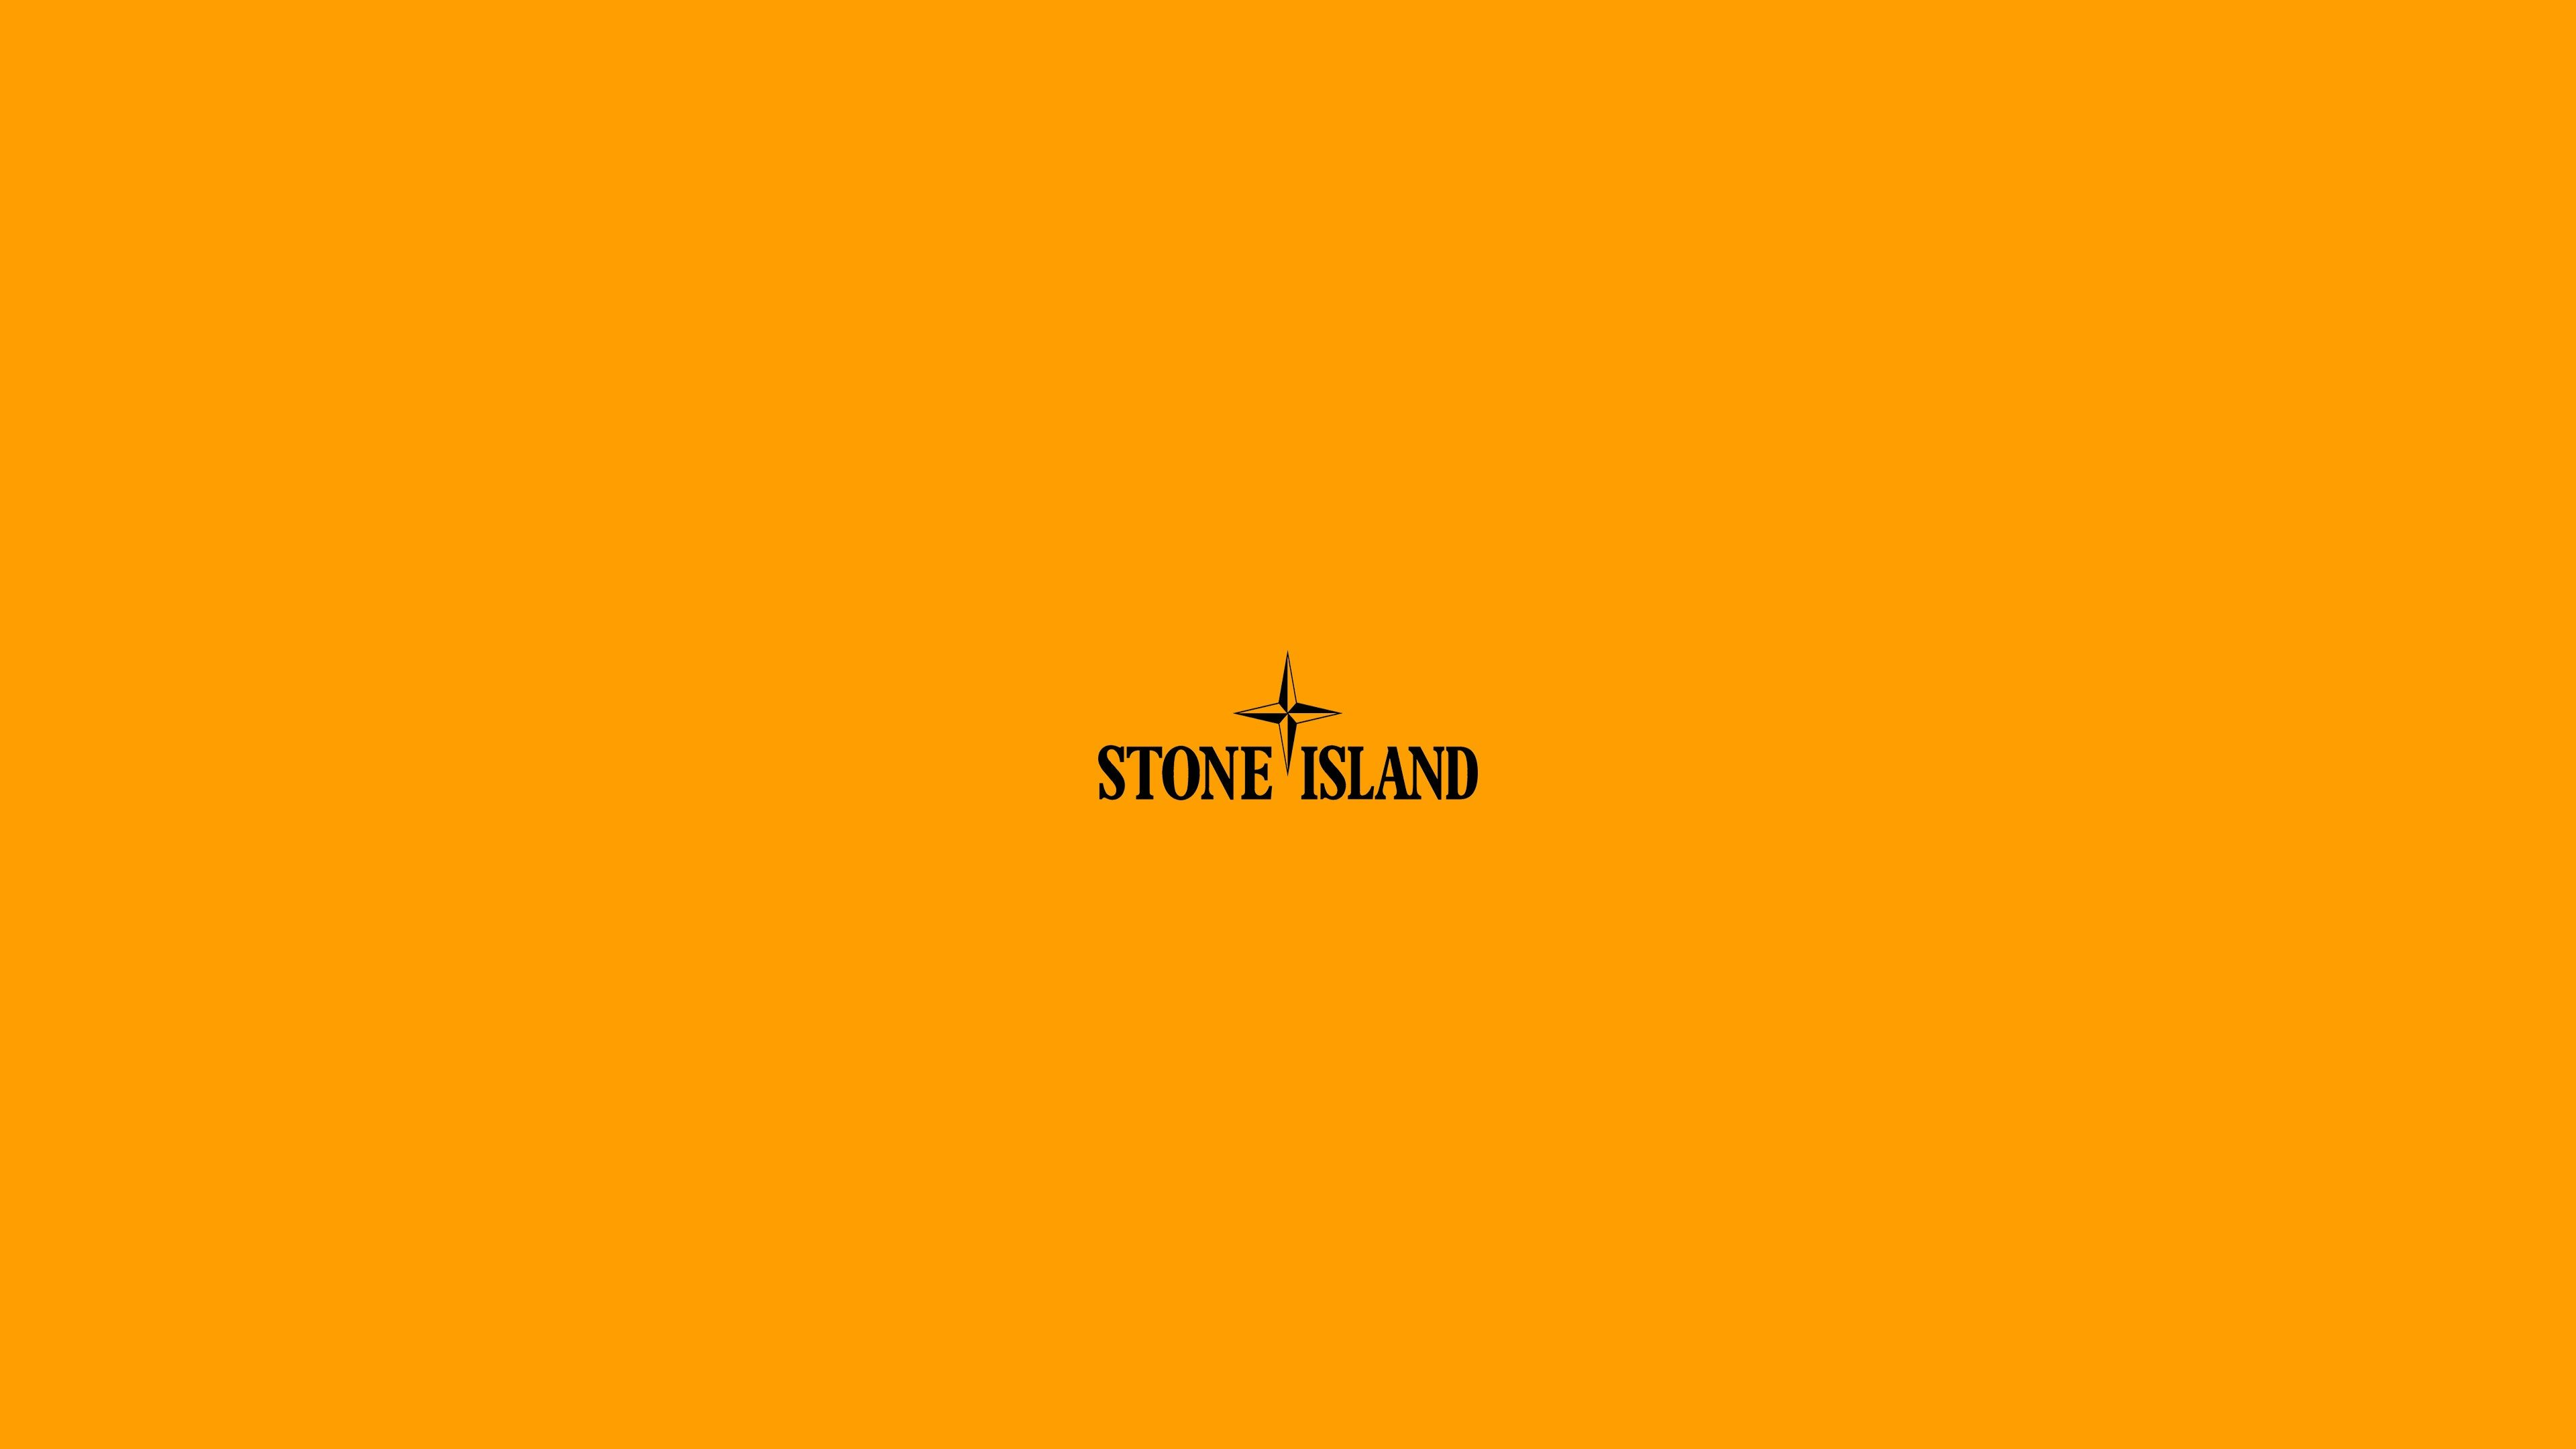 Stone Island Wallpapers Top Free Stone Island Backgrounds